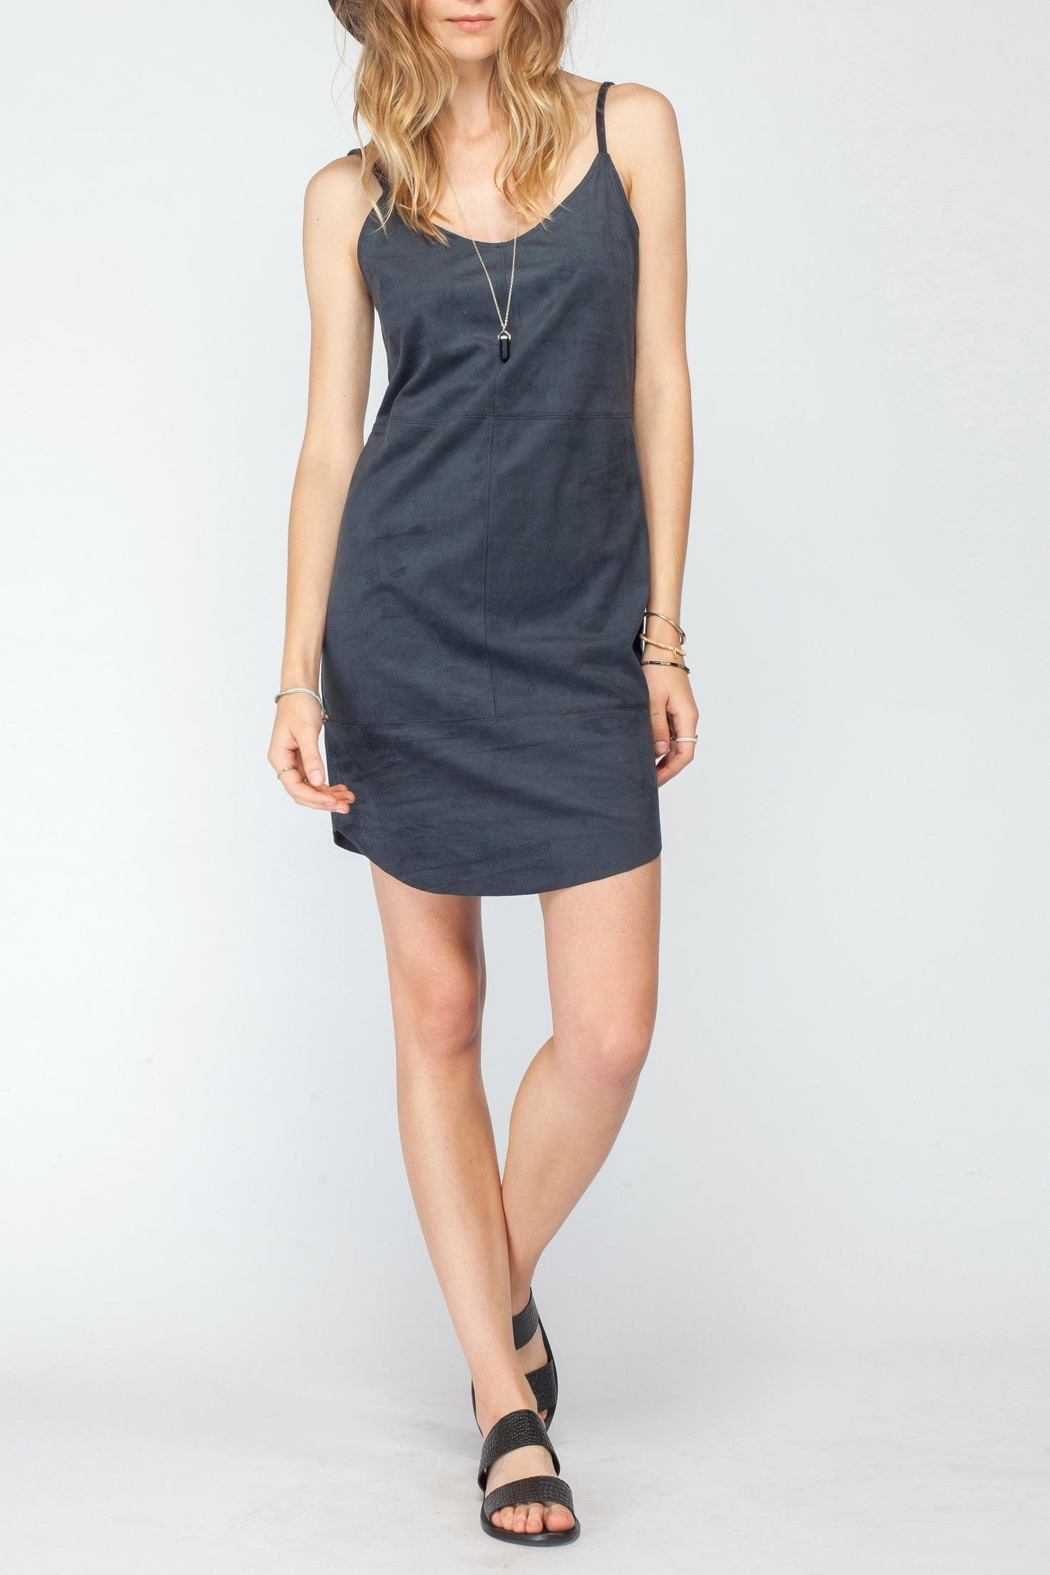 Gentle Fawn Faux Suede Dress - Main Image